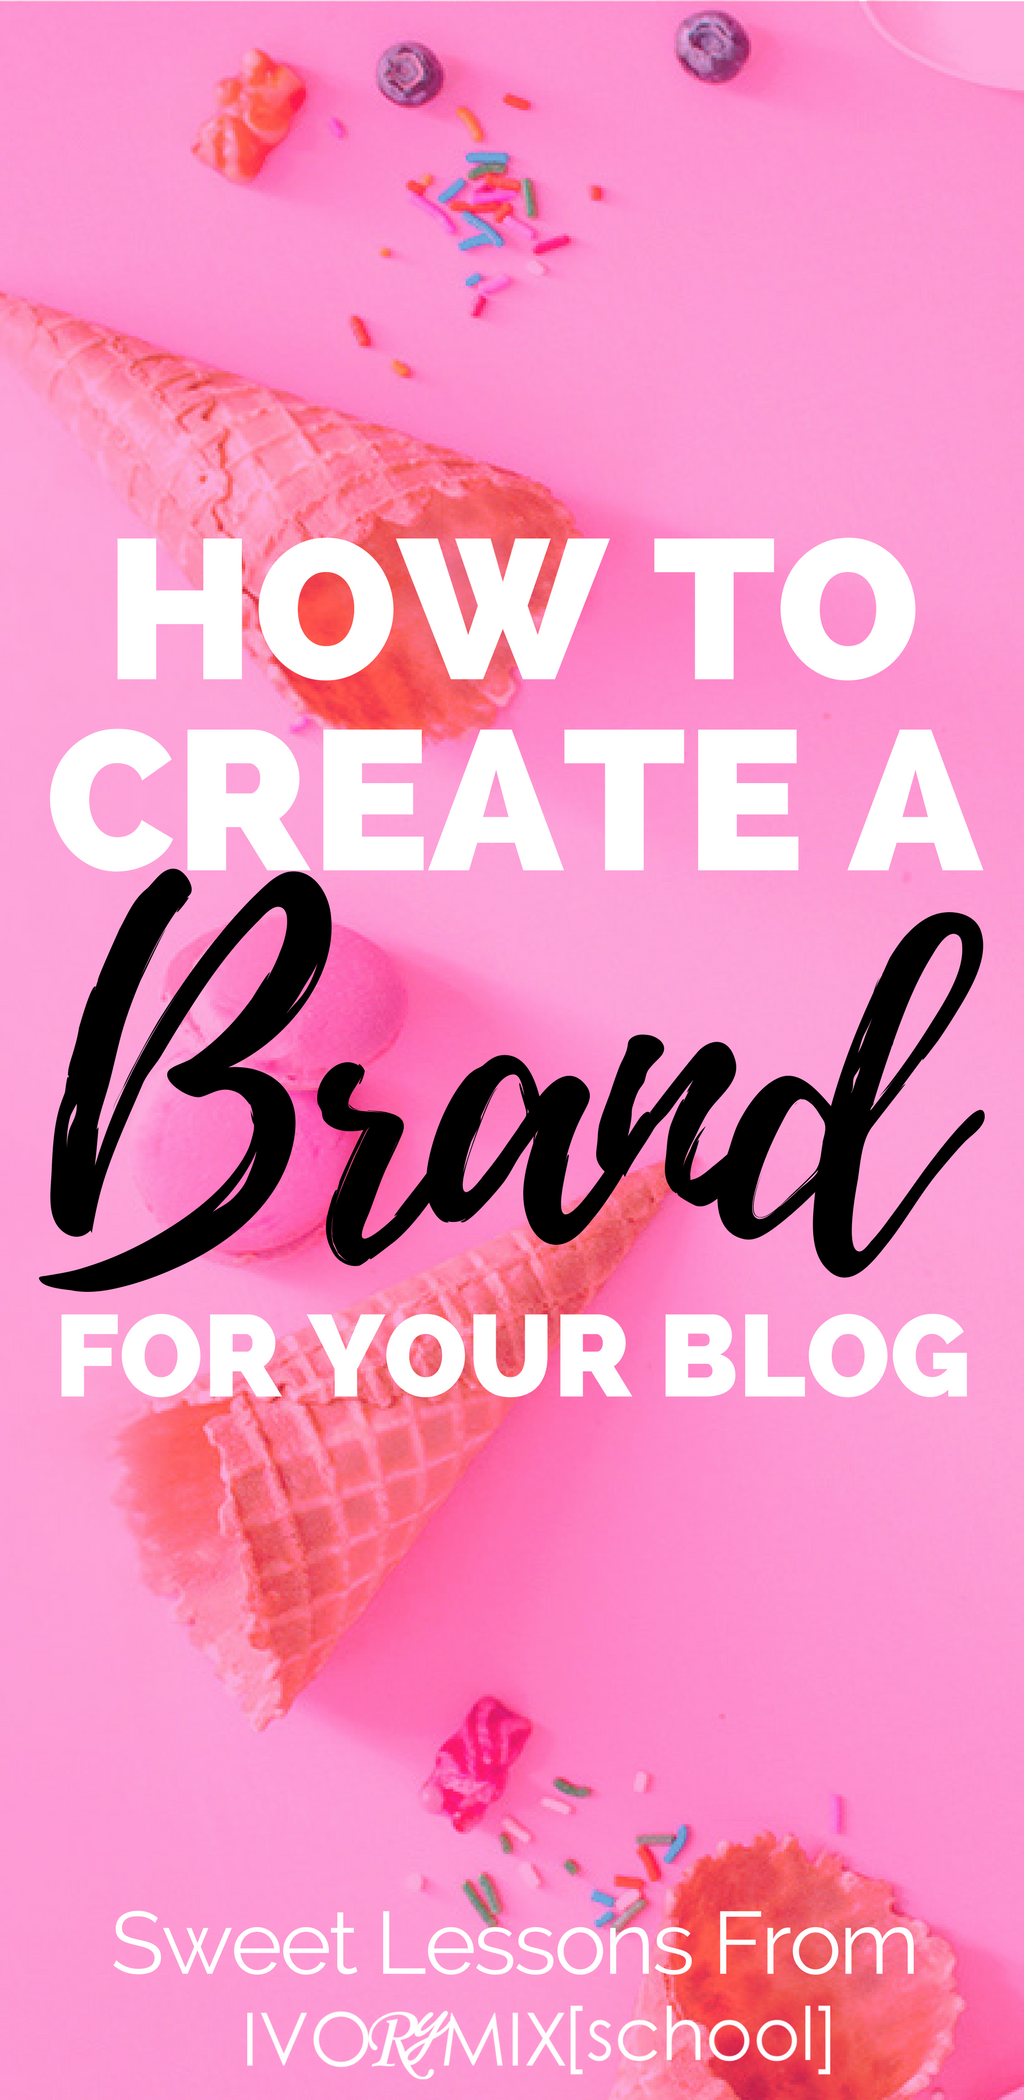 how-to-create-a-brand-for-your-blog-sweet-lessons-from-ivorymixschool-teachable-com